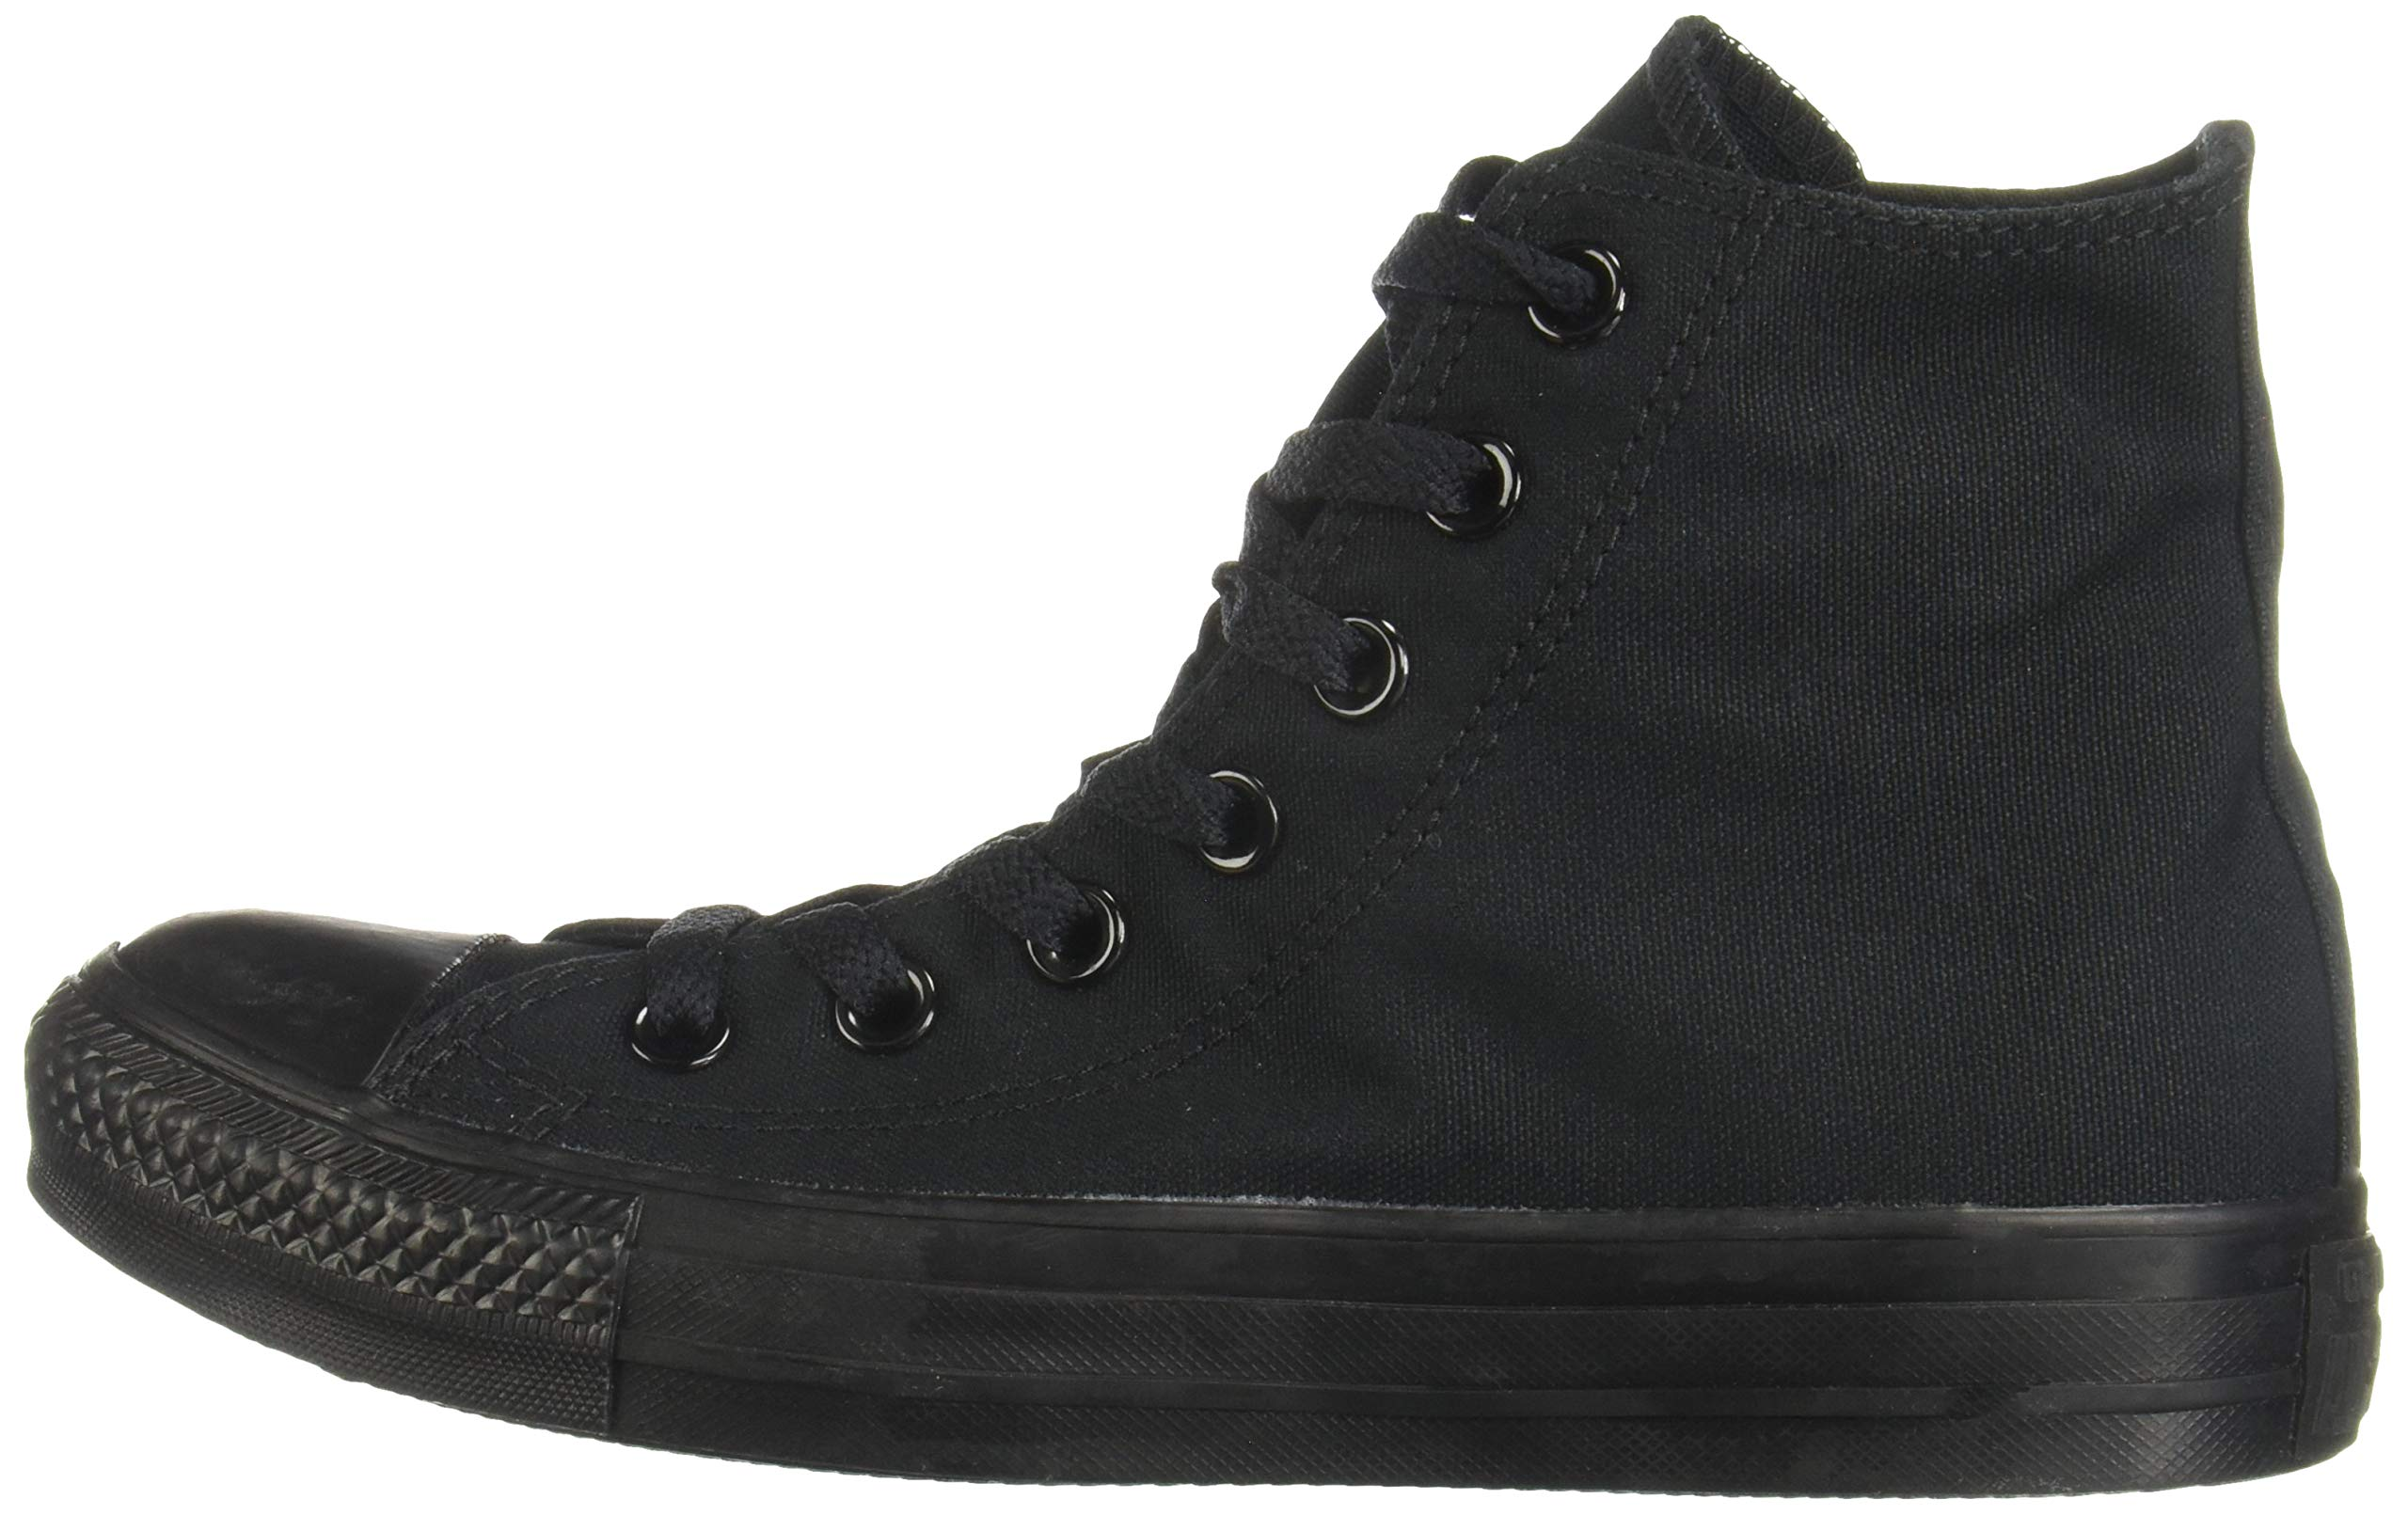 Converse Chuck Taylor All Star High Top Black/Black 9 D(M) US by Converse (Image #5)